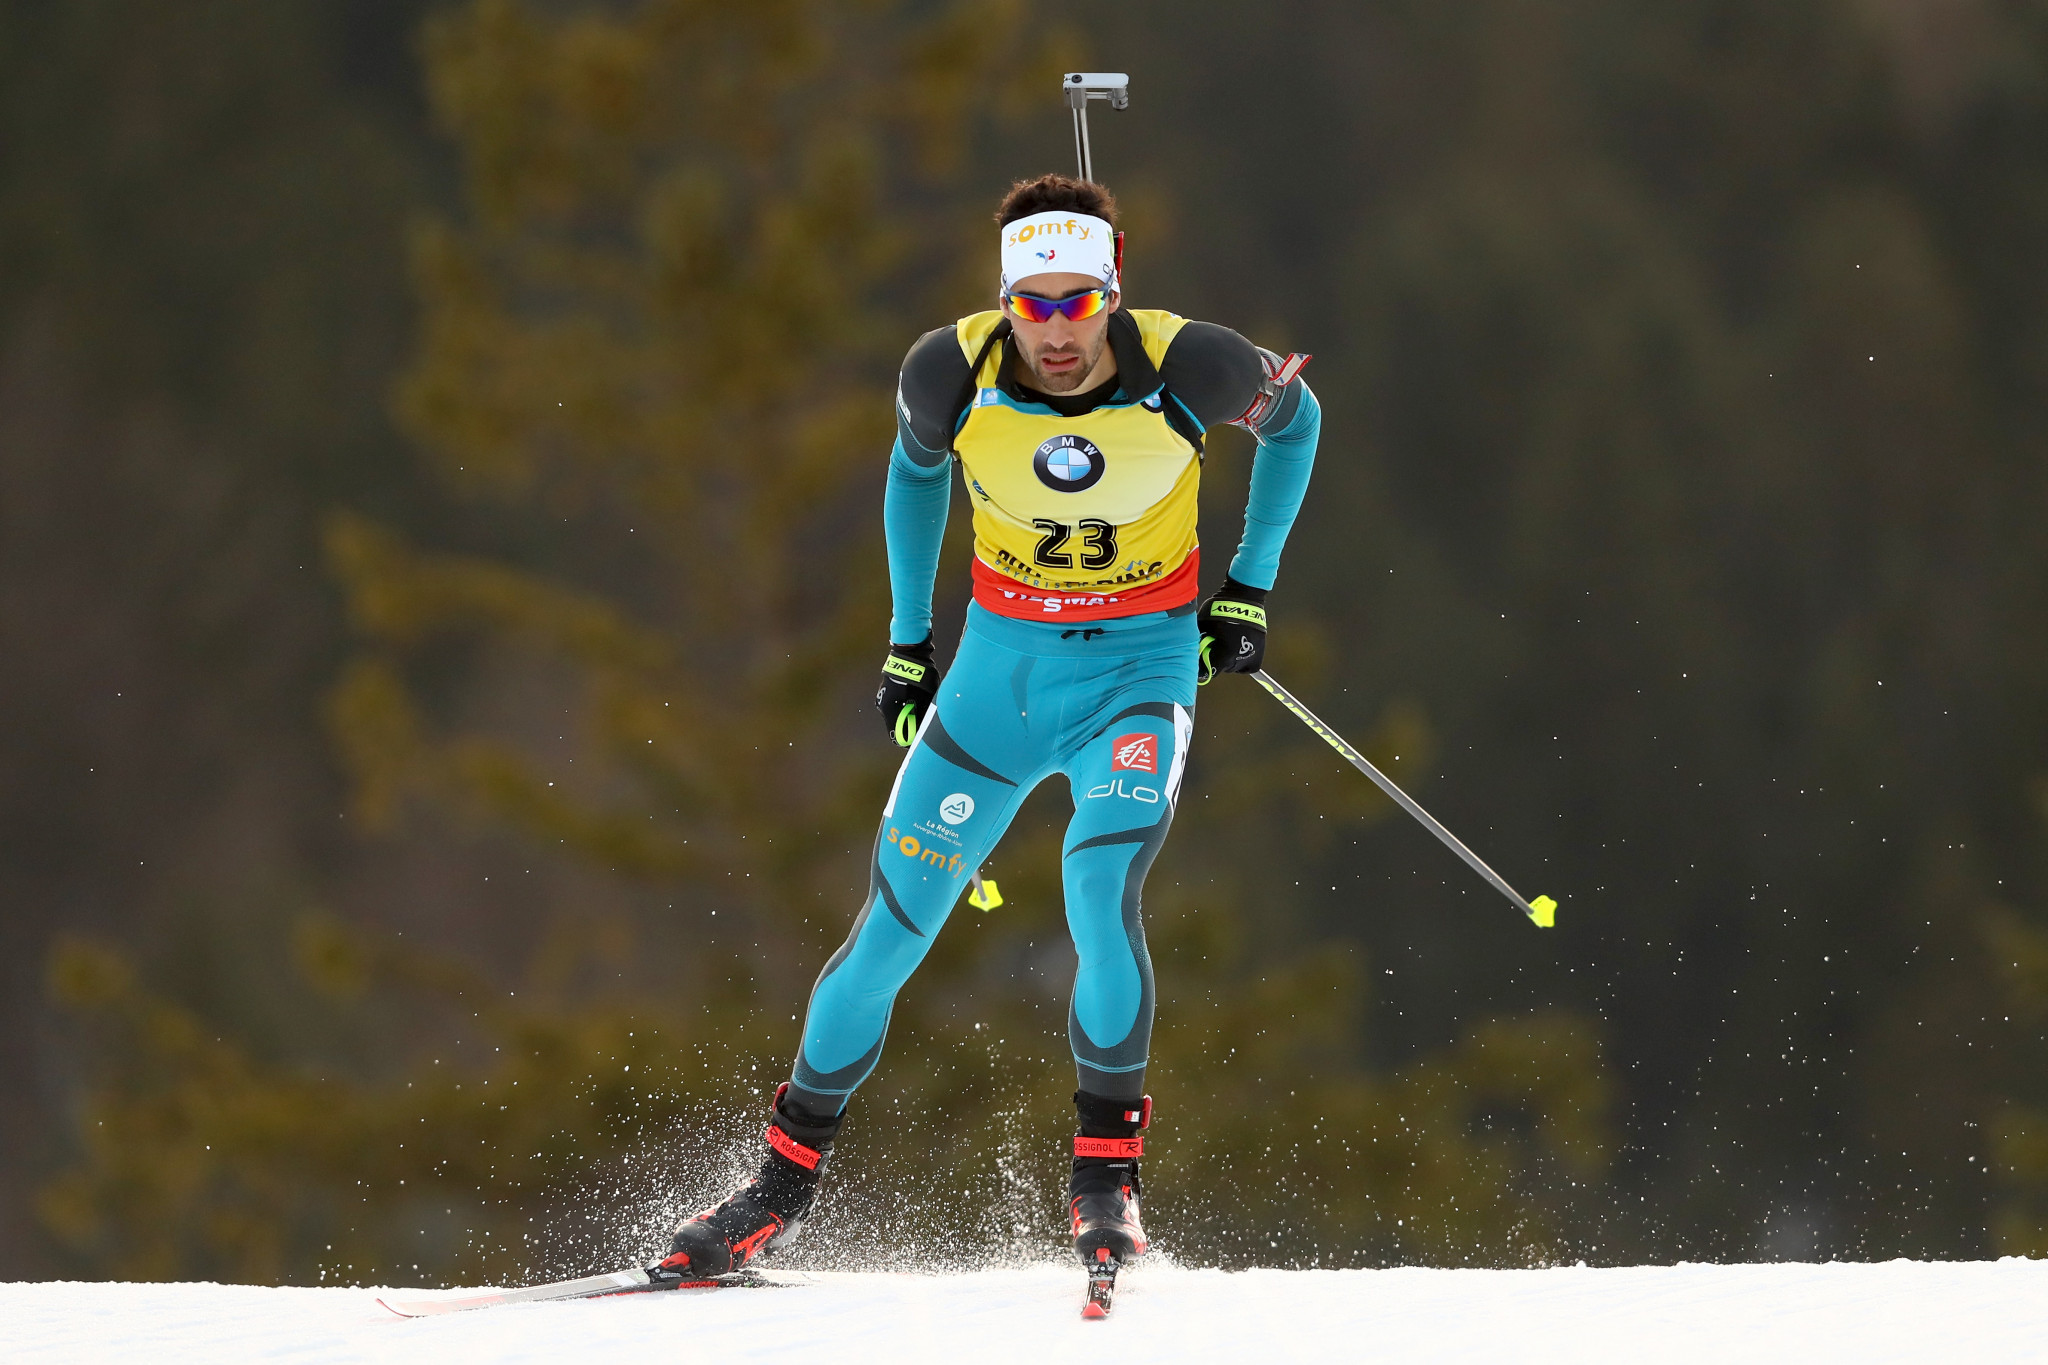 Fourcade clinches fourth consecutive IBU World Cup victory with 20km triumph in Ruhpolding